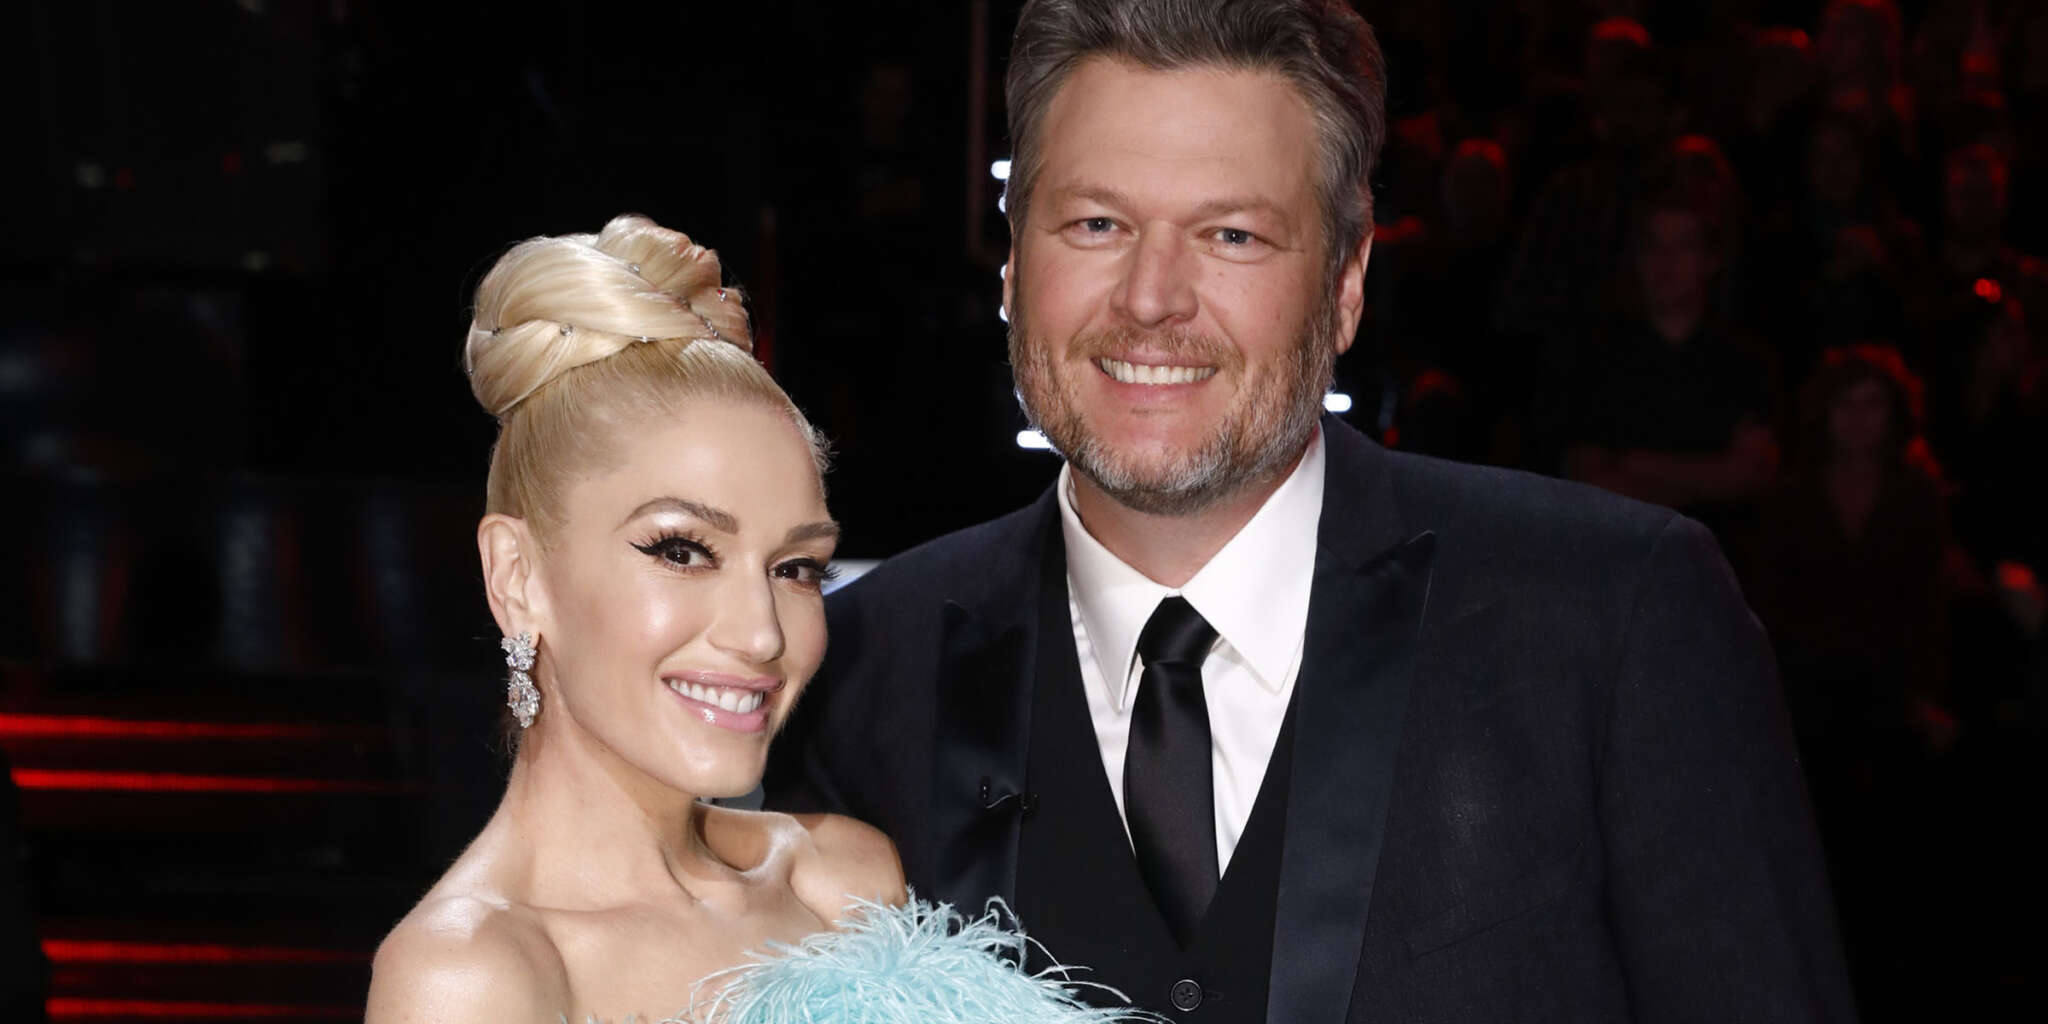 blake-shelton-says-he-wants-to-lose-weight-before-his-wedding-with-gwen-stefani